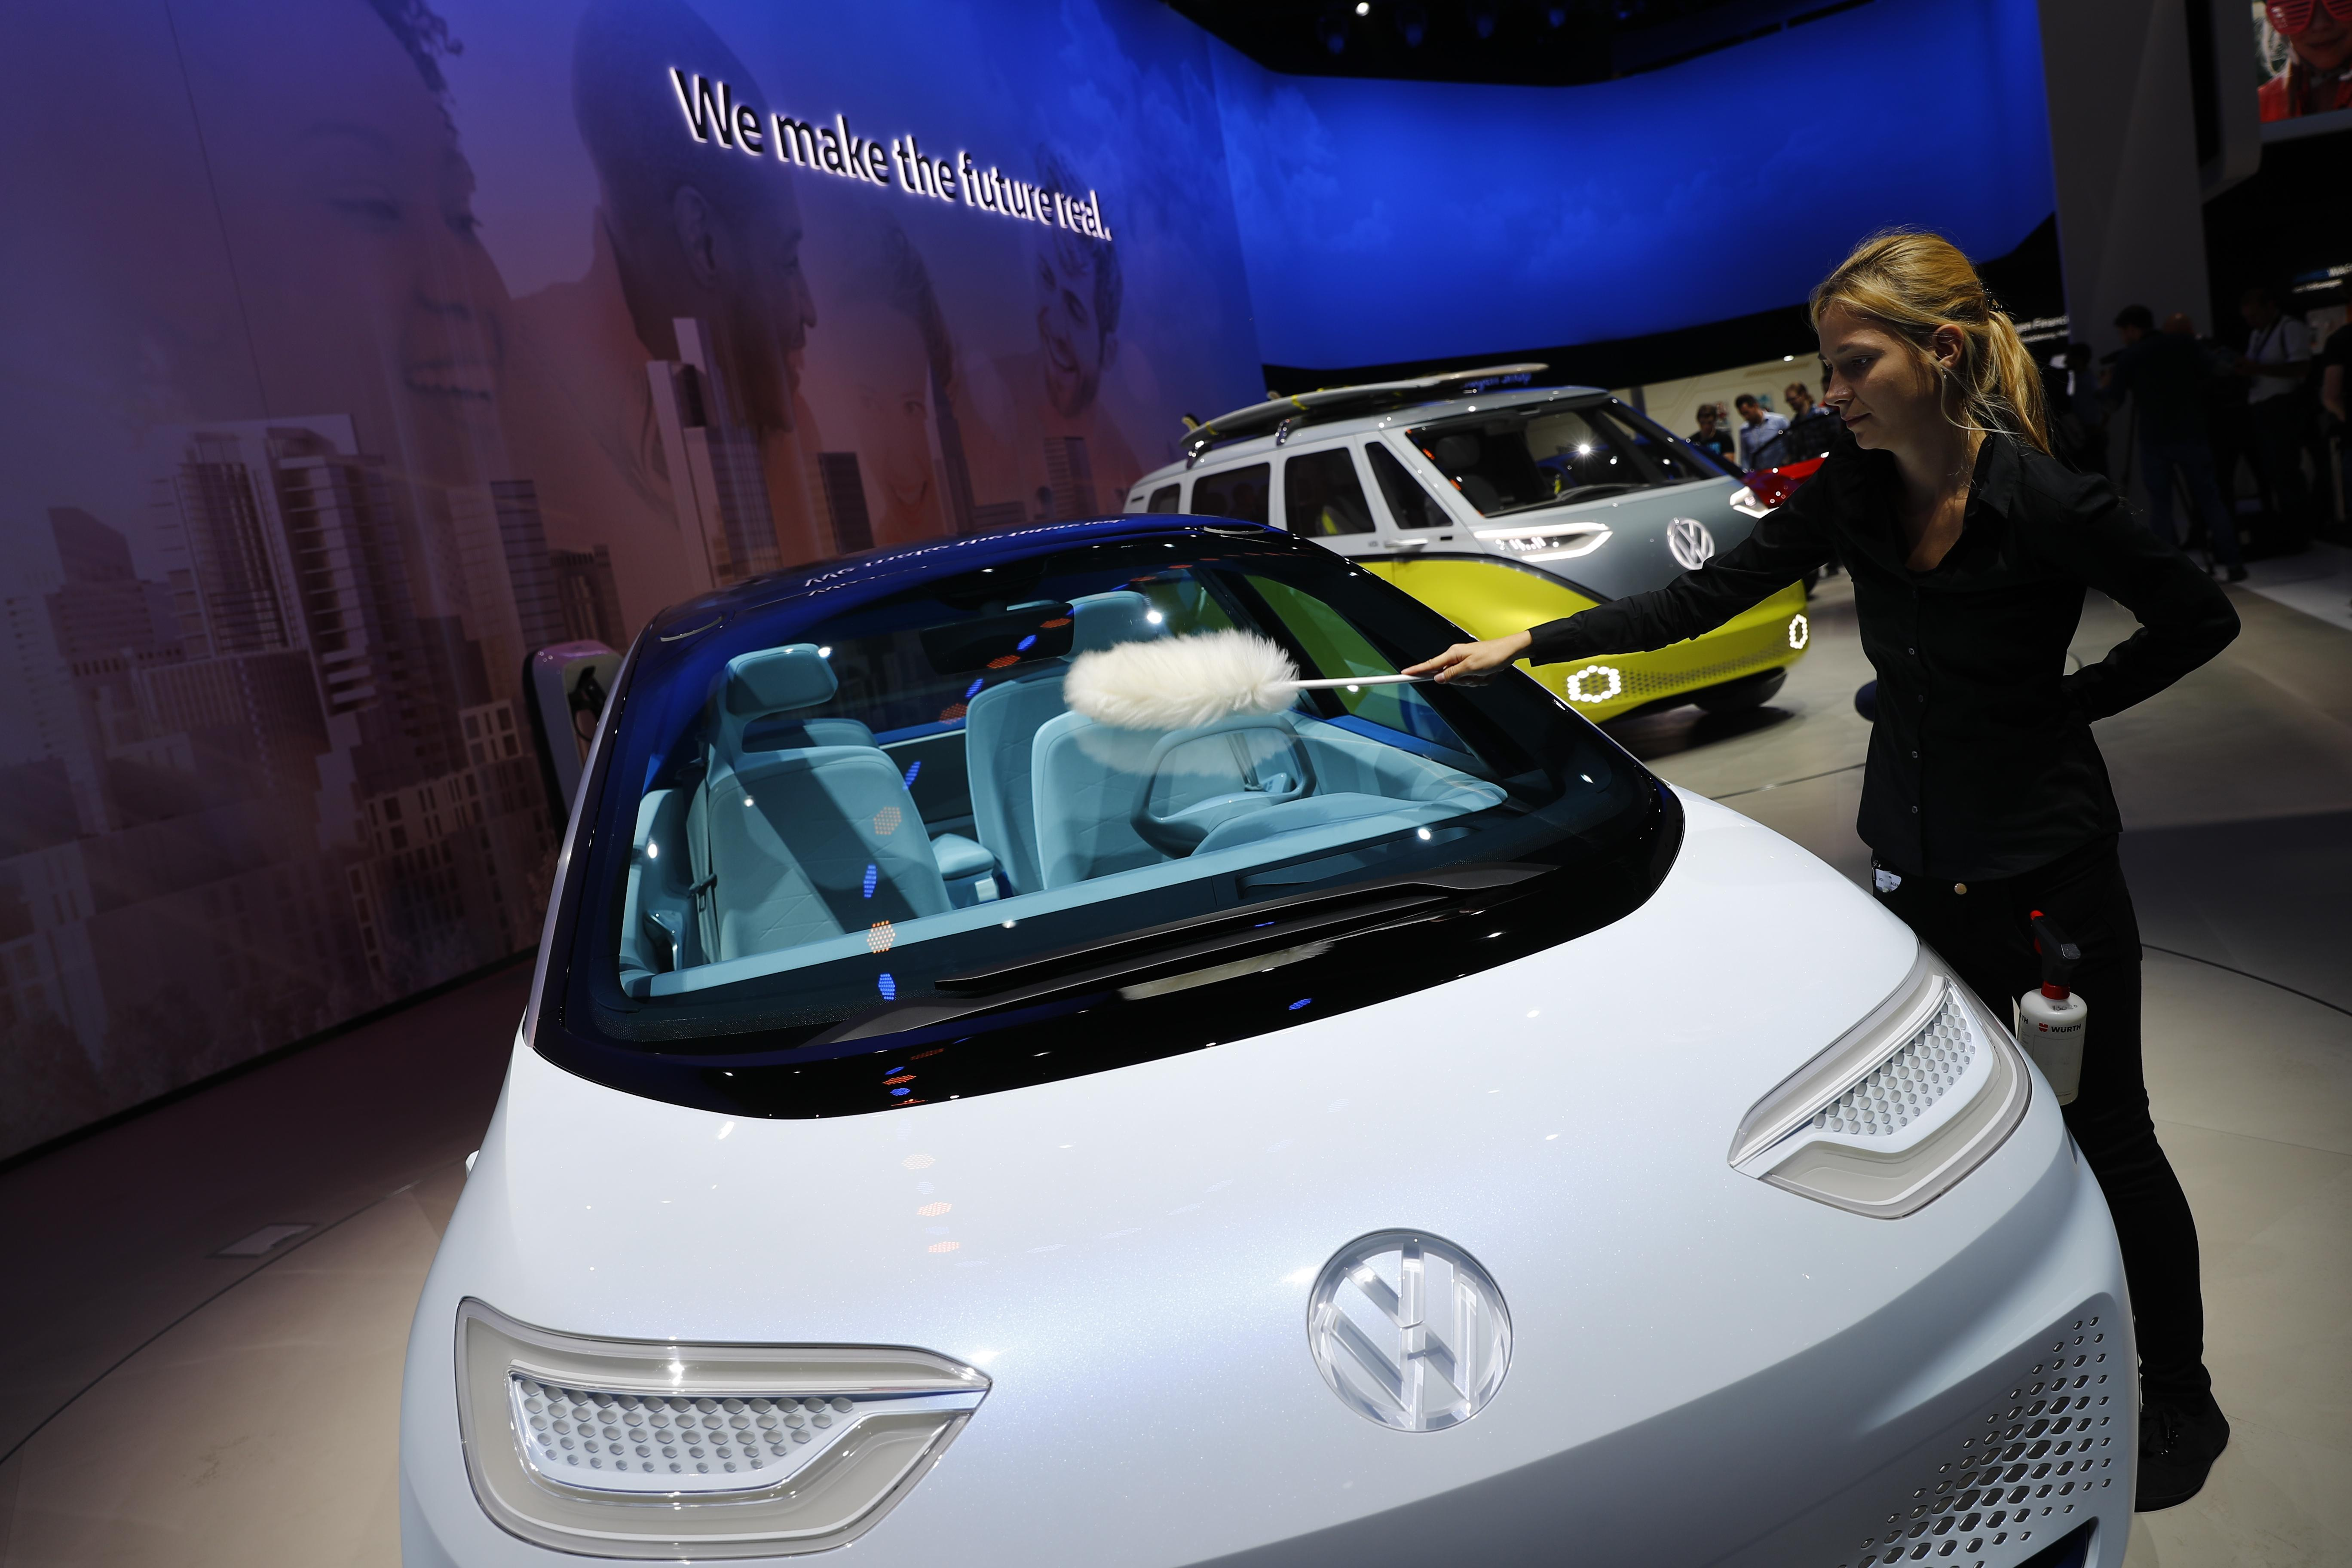 All about that bass: carmakers seek electric car sounds for post